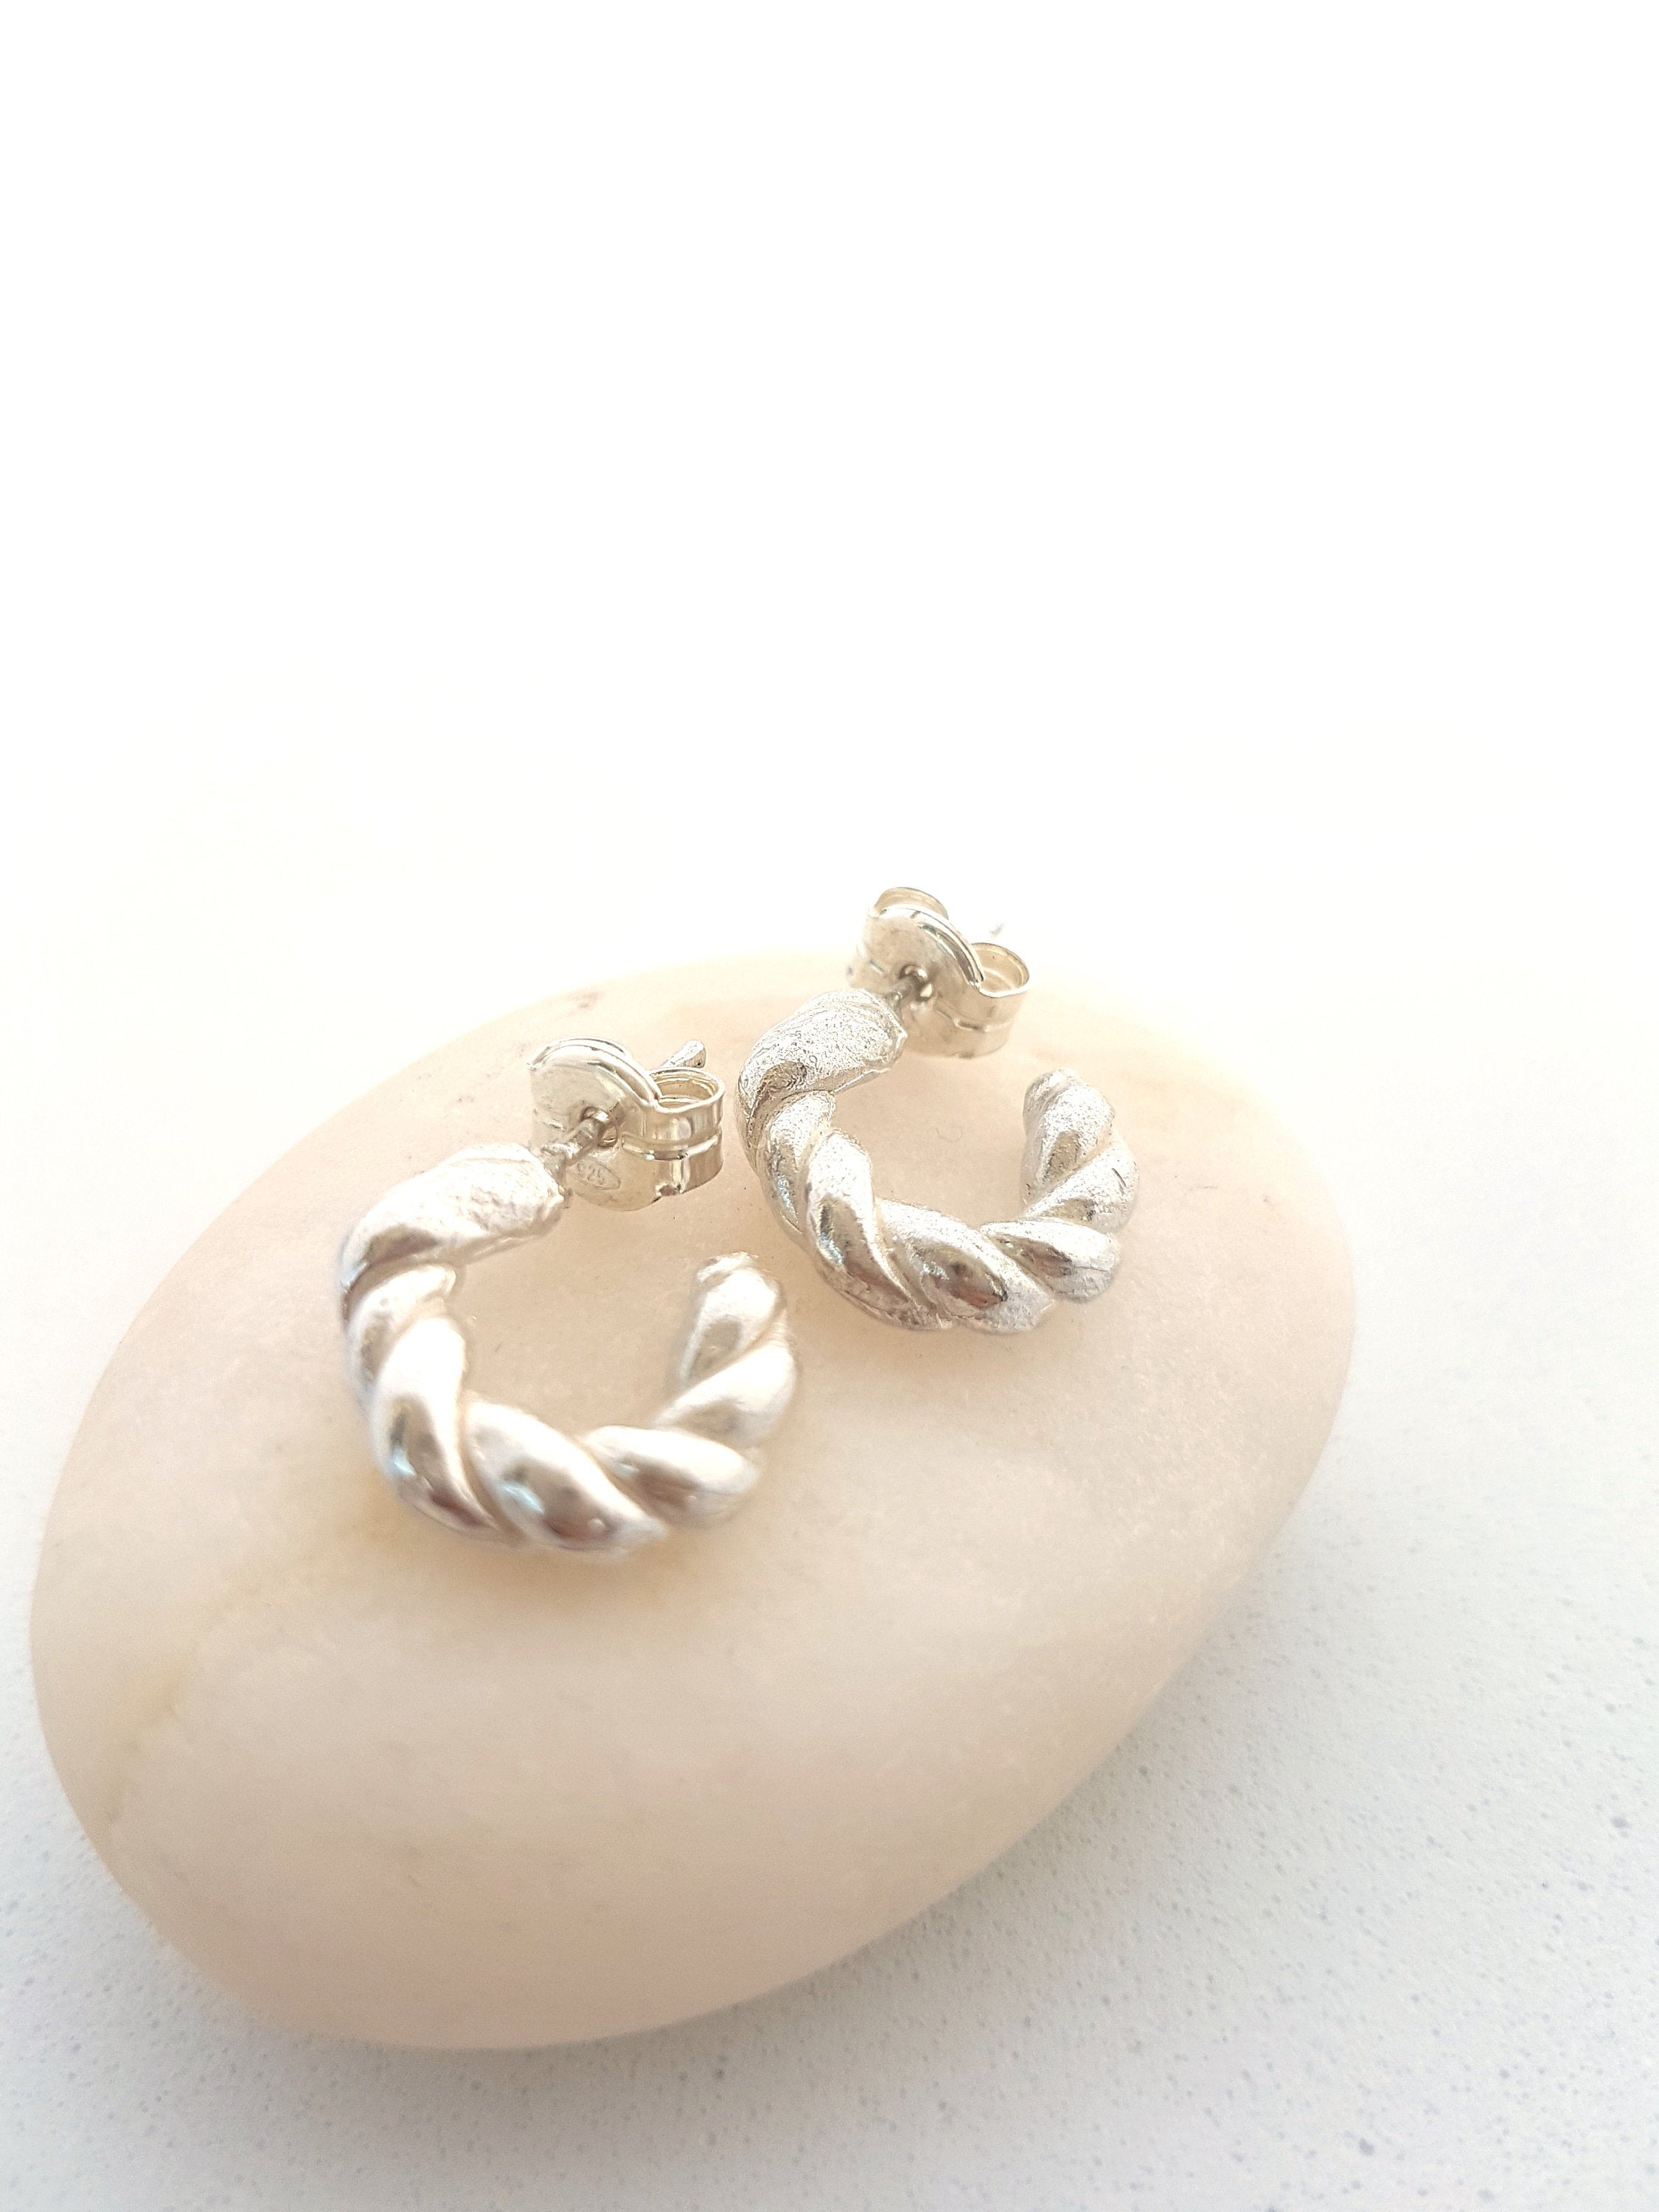 chunky rope hoop earrings in sterling silver, handmade twist hoop earrings for a daily wear